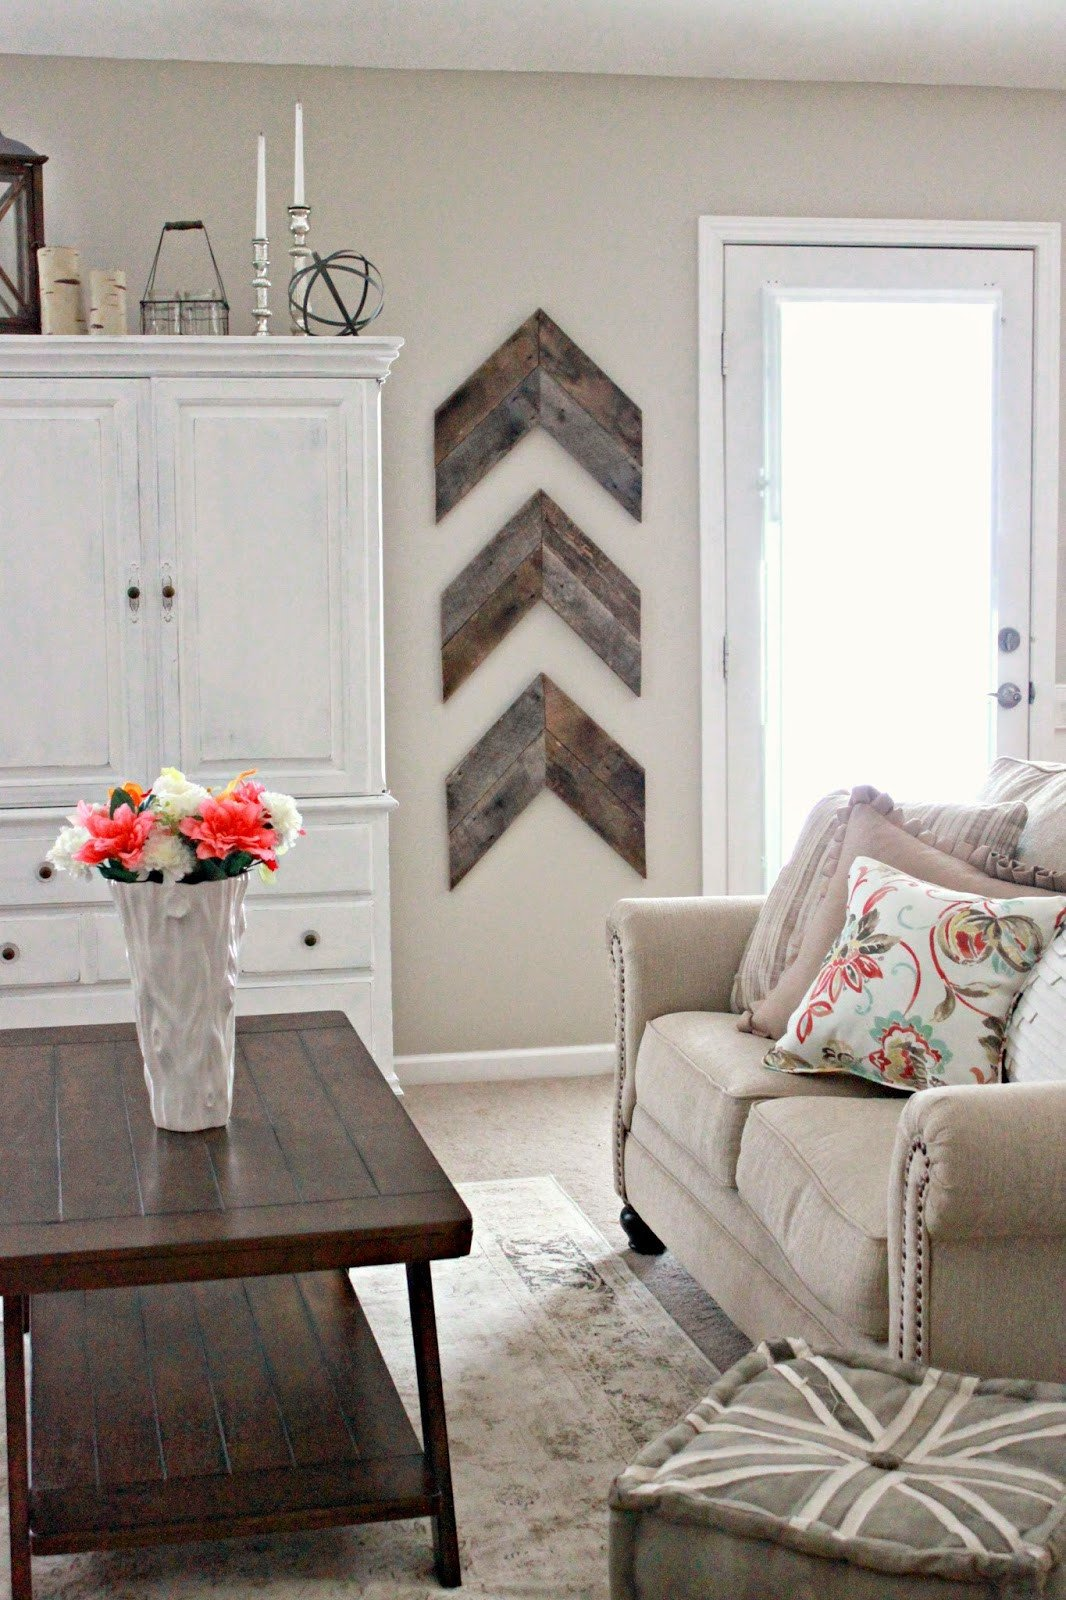 Diy Living Room Wall Decor 15 Striking Ways to Decorate with Arrows